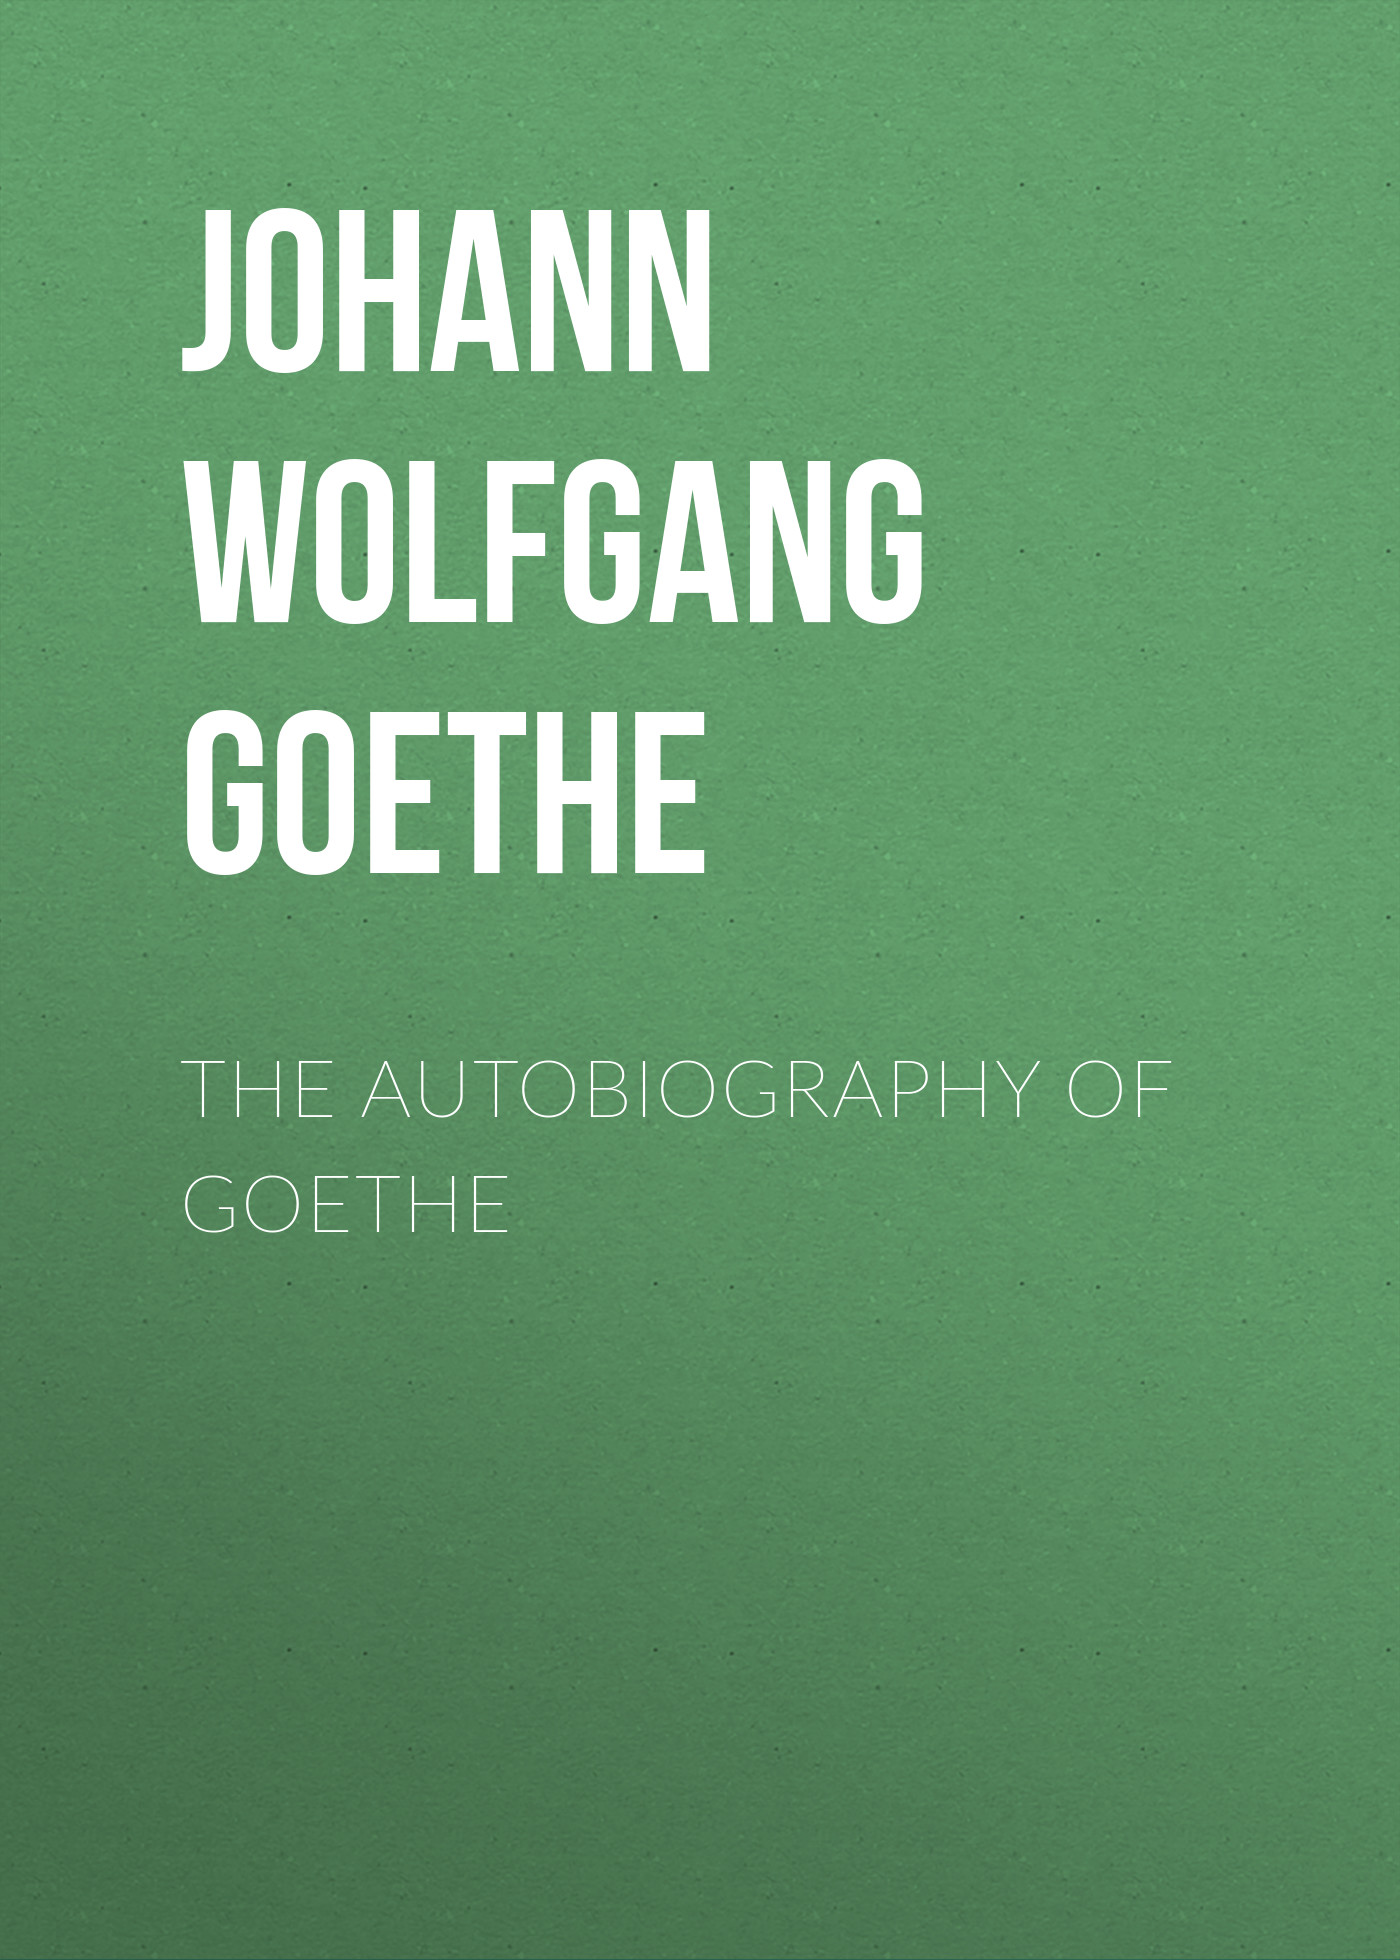 Иоганн Вольфганг фон Гёте The Autobiography of Goethe иоганн вольфганг фон гёте прометей